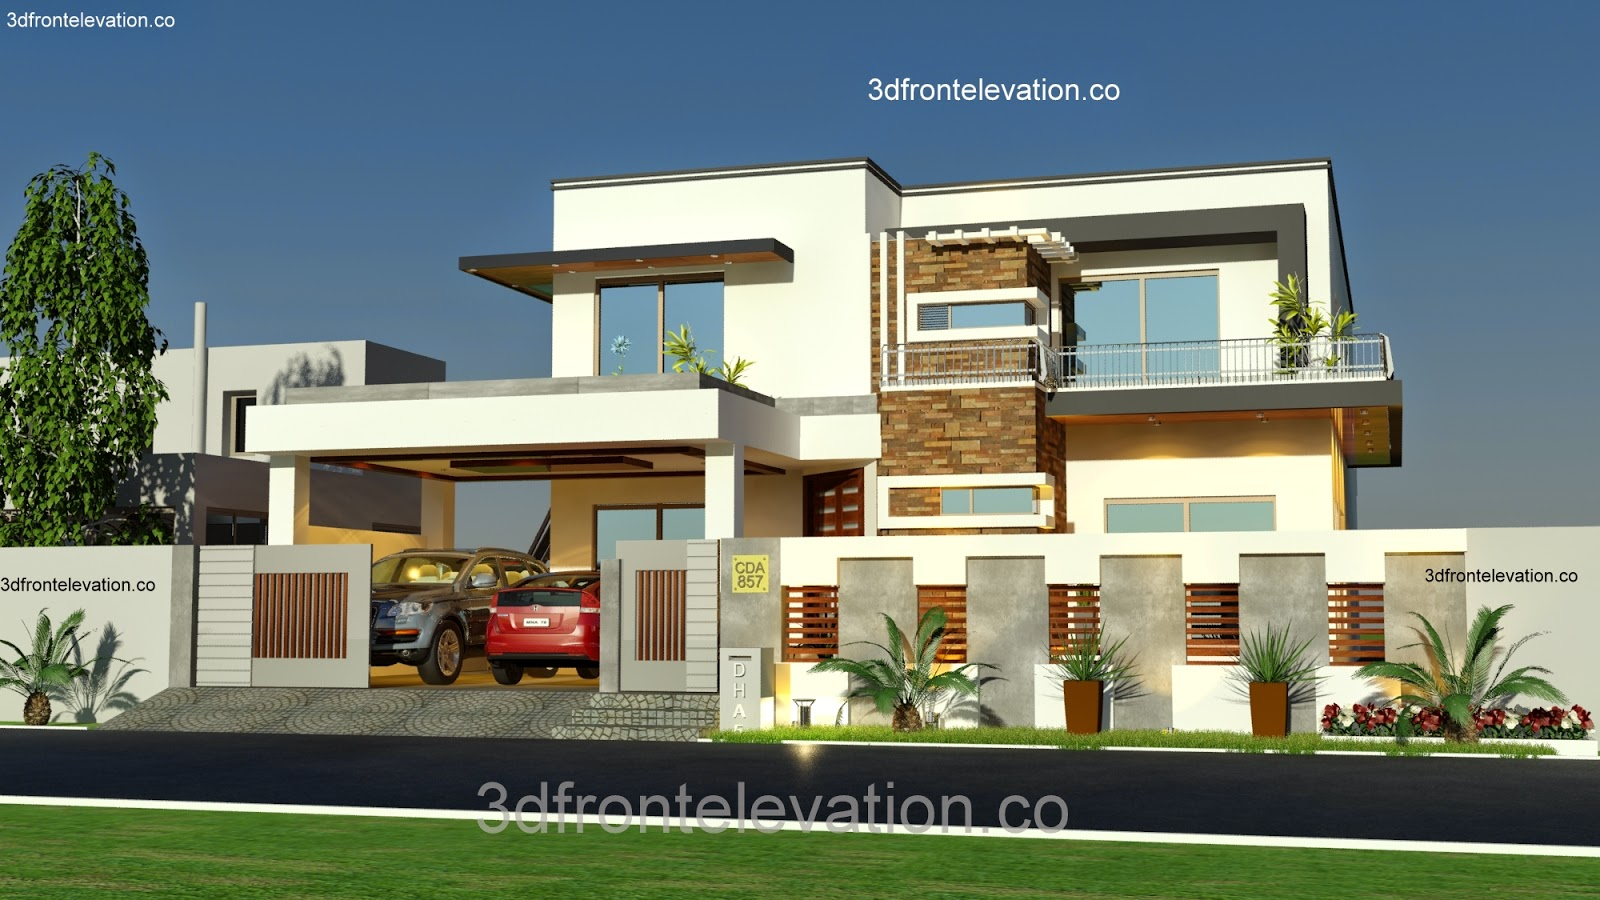 town plan kerala house html with Islamabad Homes Designs Pakistan on 10 Marla Corner Plot 3d Front Elevation also New Modern Villa Design additionally Islamabad Homes Designs Pakistan also Handicap accessible small house plans further 3d Isometric Small House Plans.